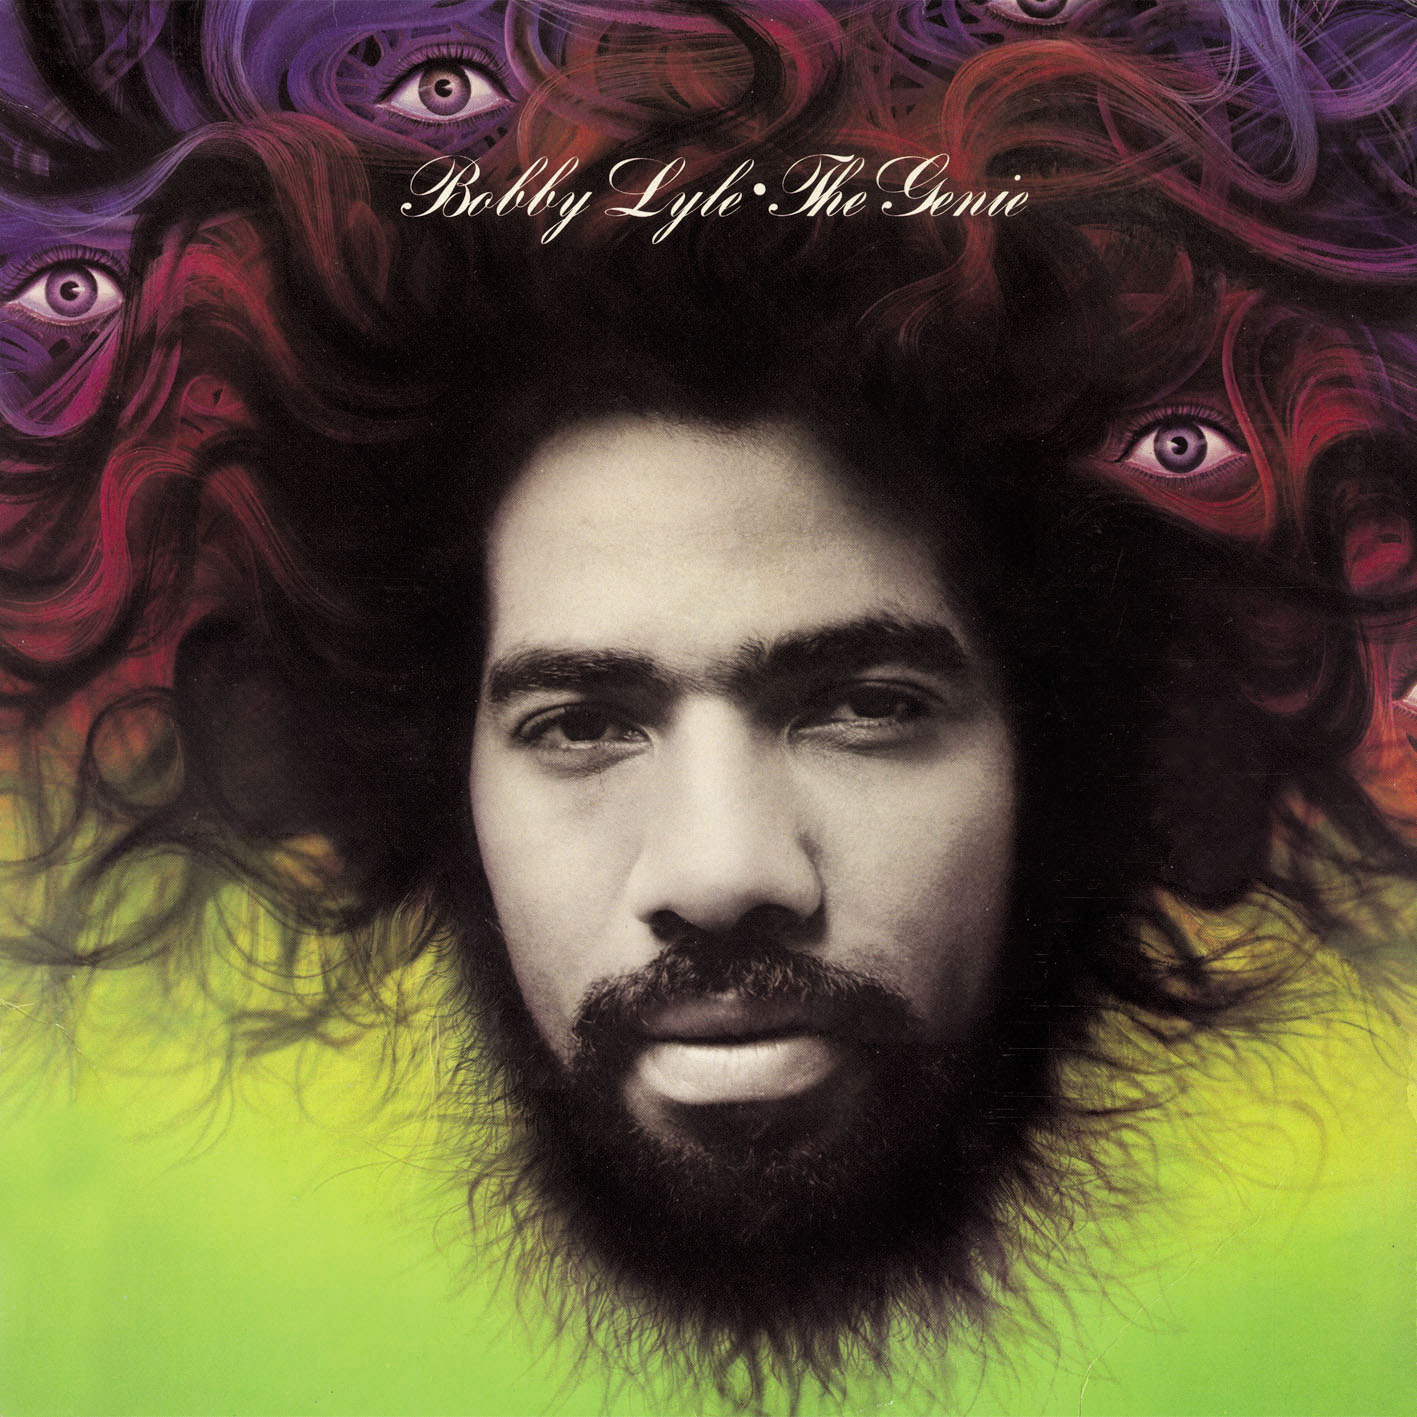 Bobby Lyle/THE GENIE CD